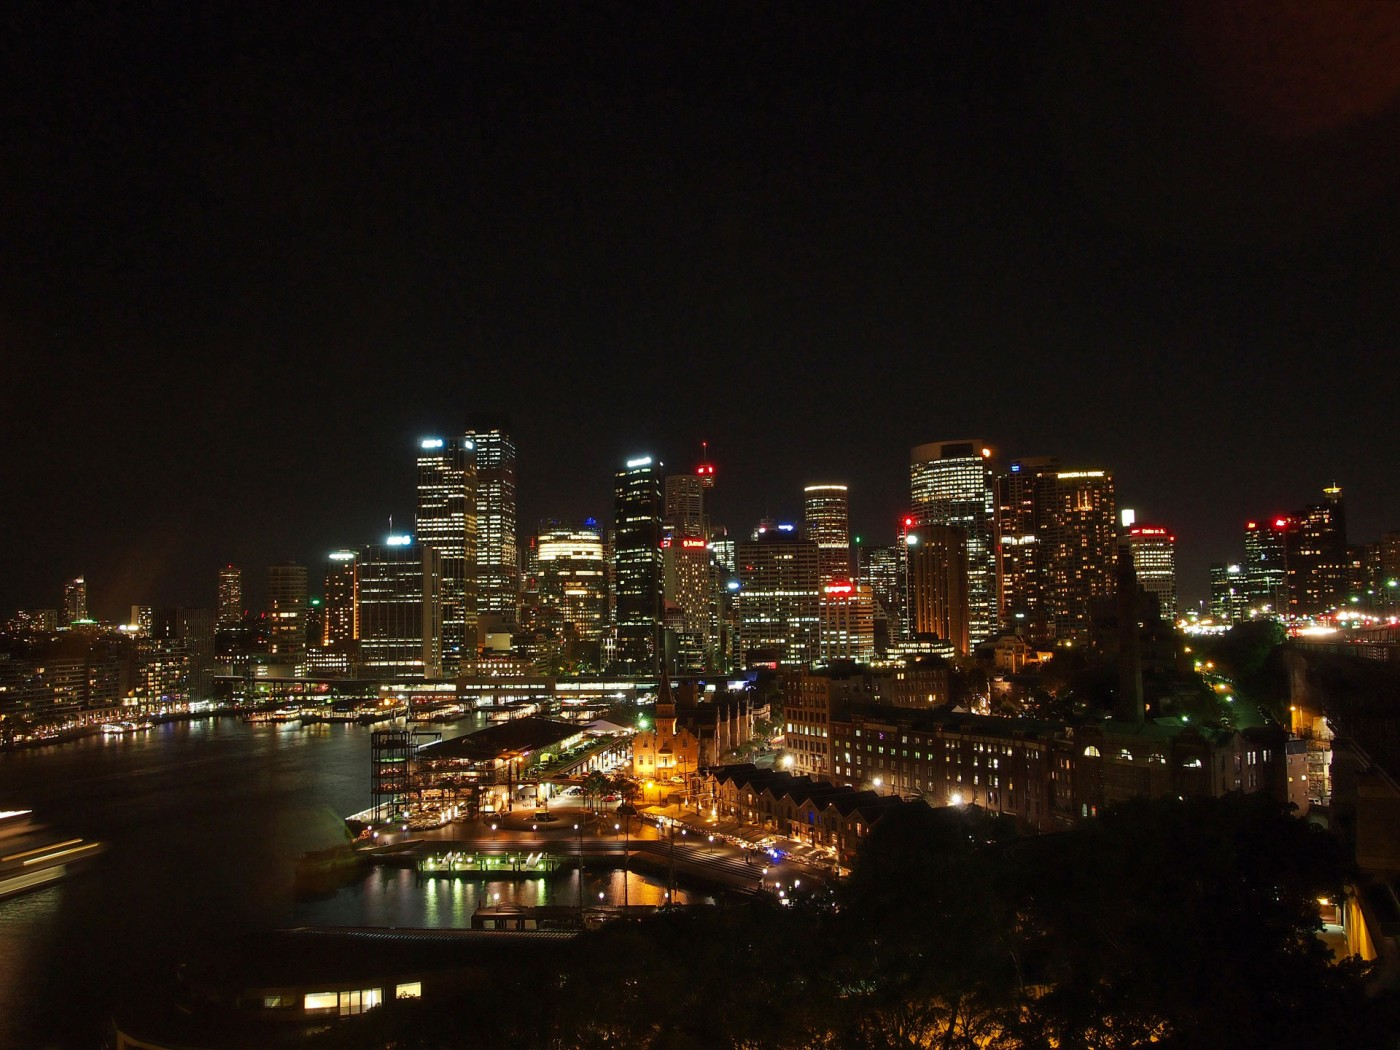 Sydney's CBD from the Harbour Bridge